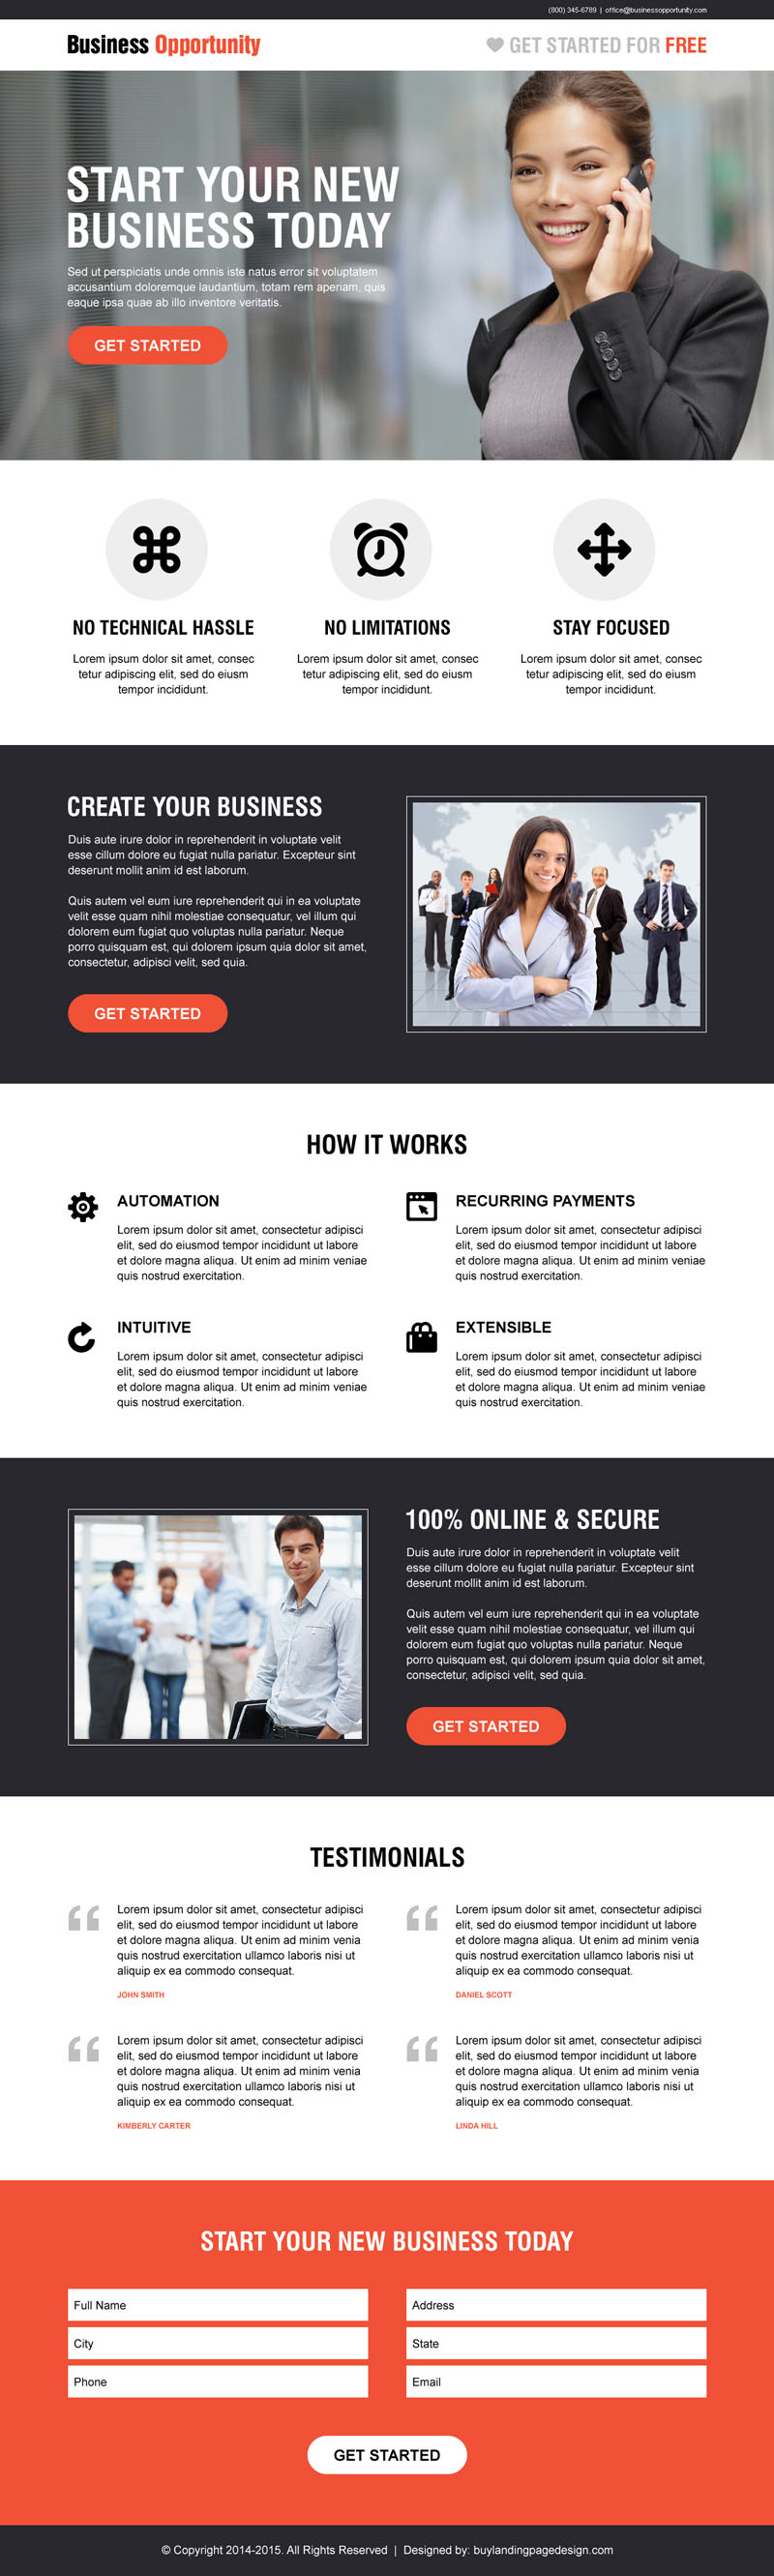 start-your-new-business-cta-and-lead-capture-landing-page-design-template-029